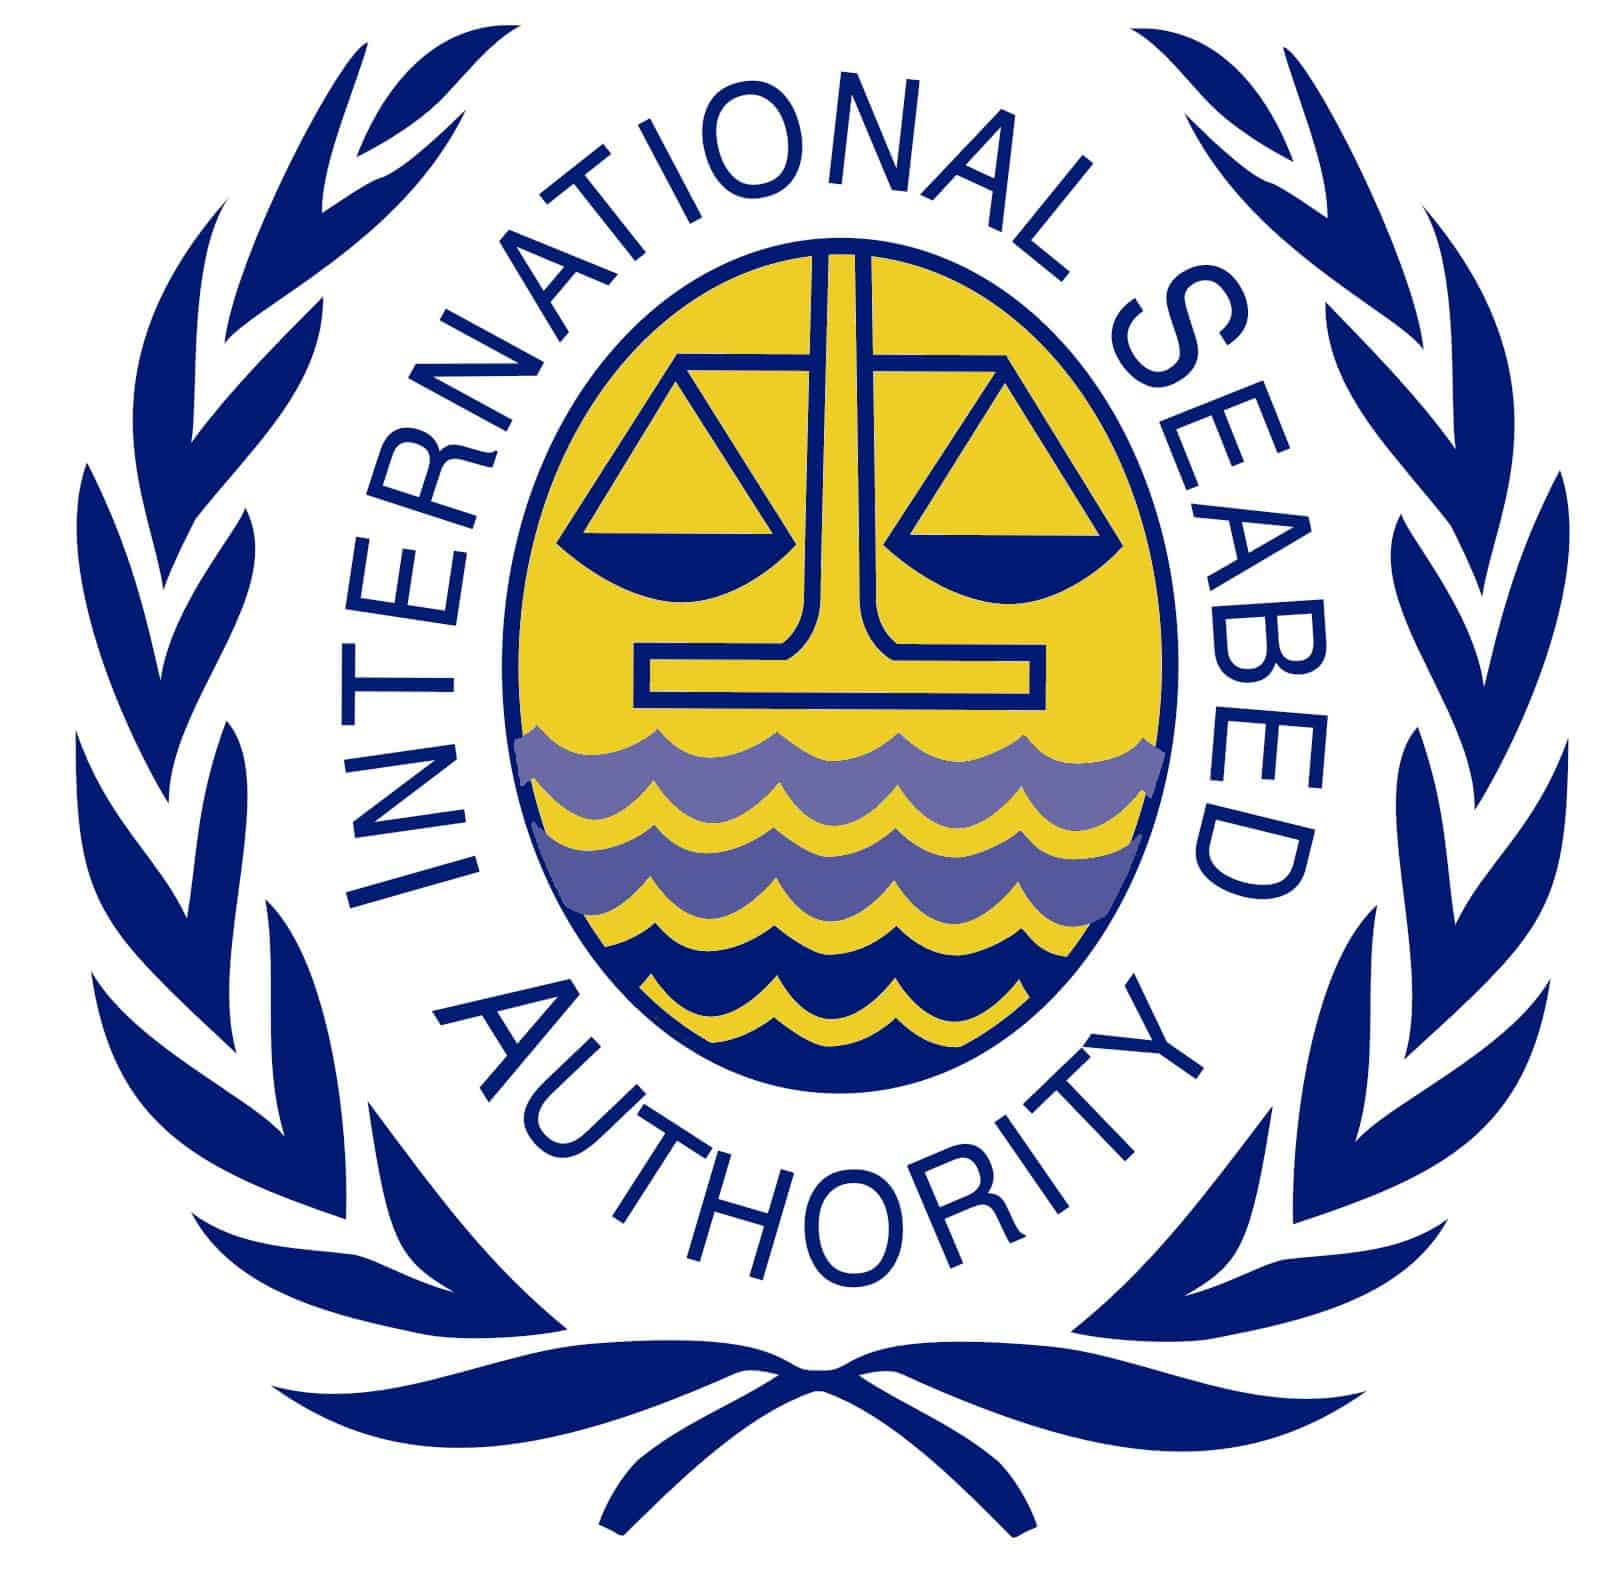 isa international seabed authority logo